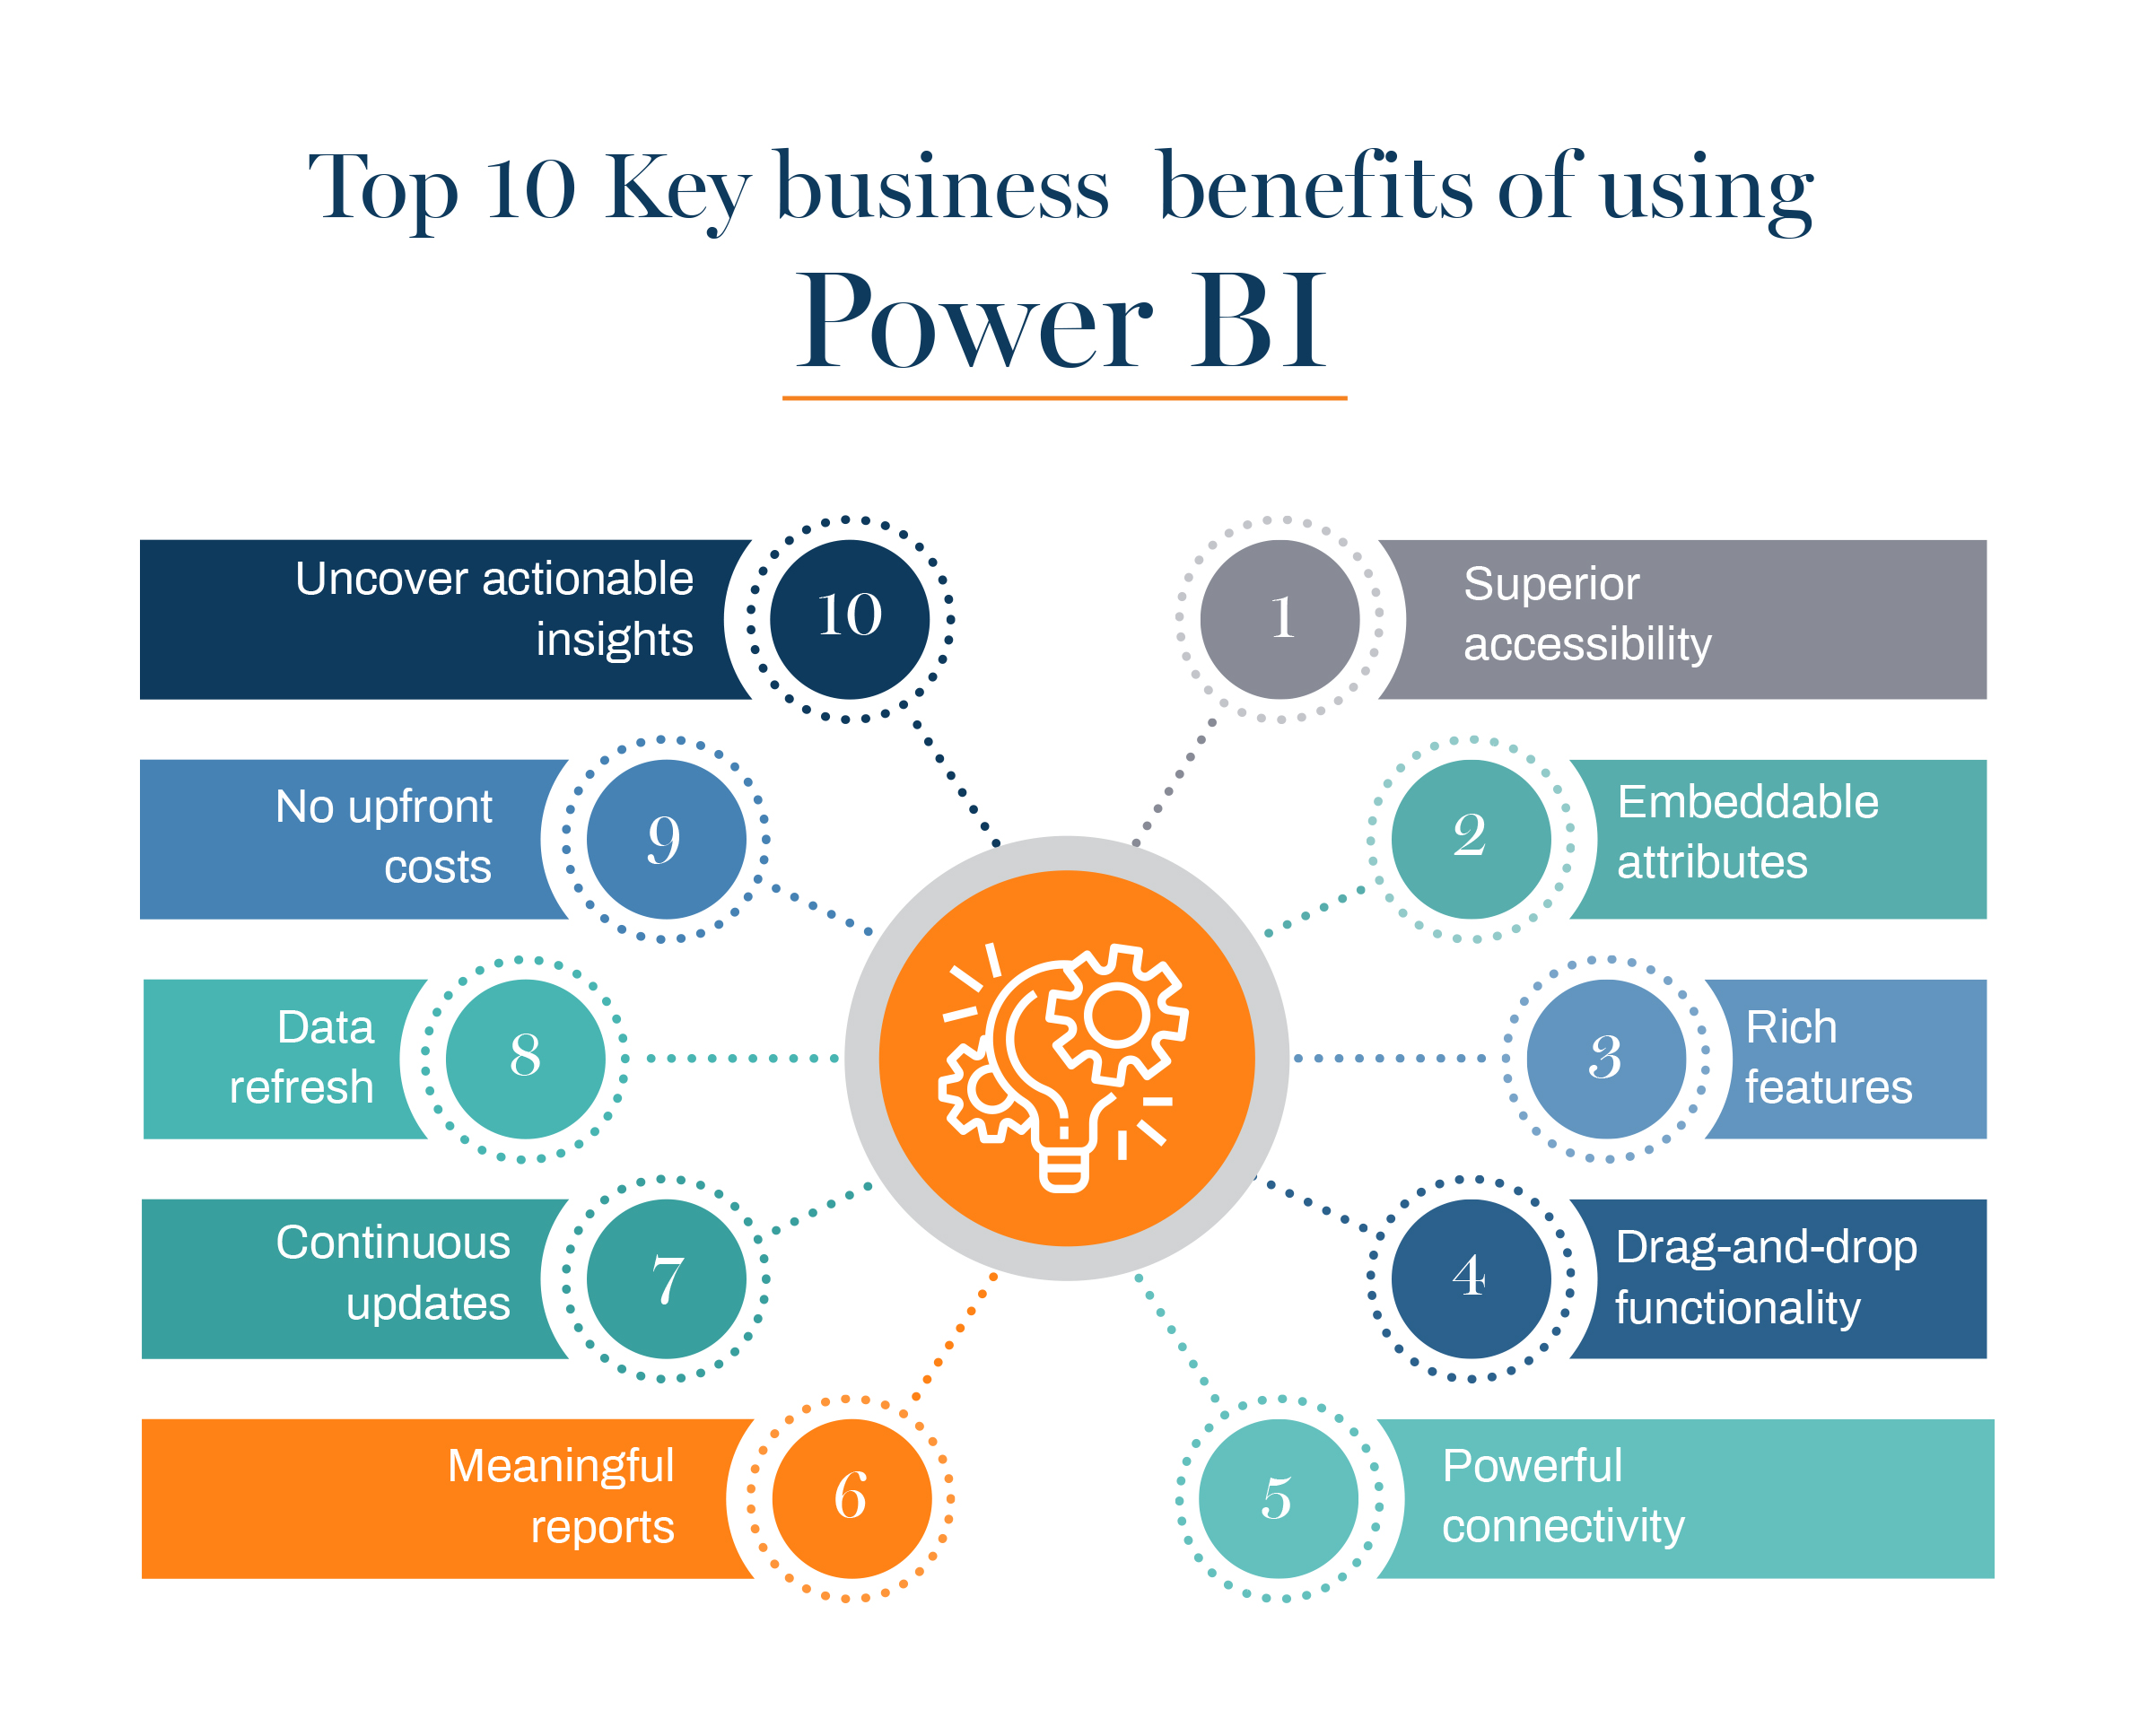 Microsoft Power BI Infographic